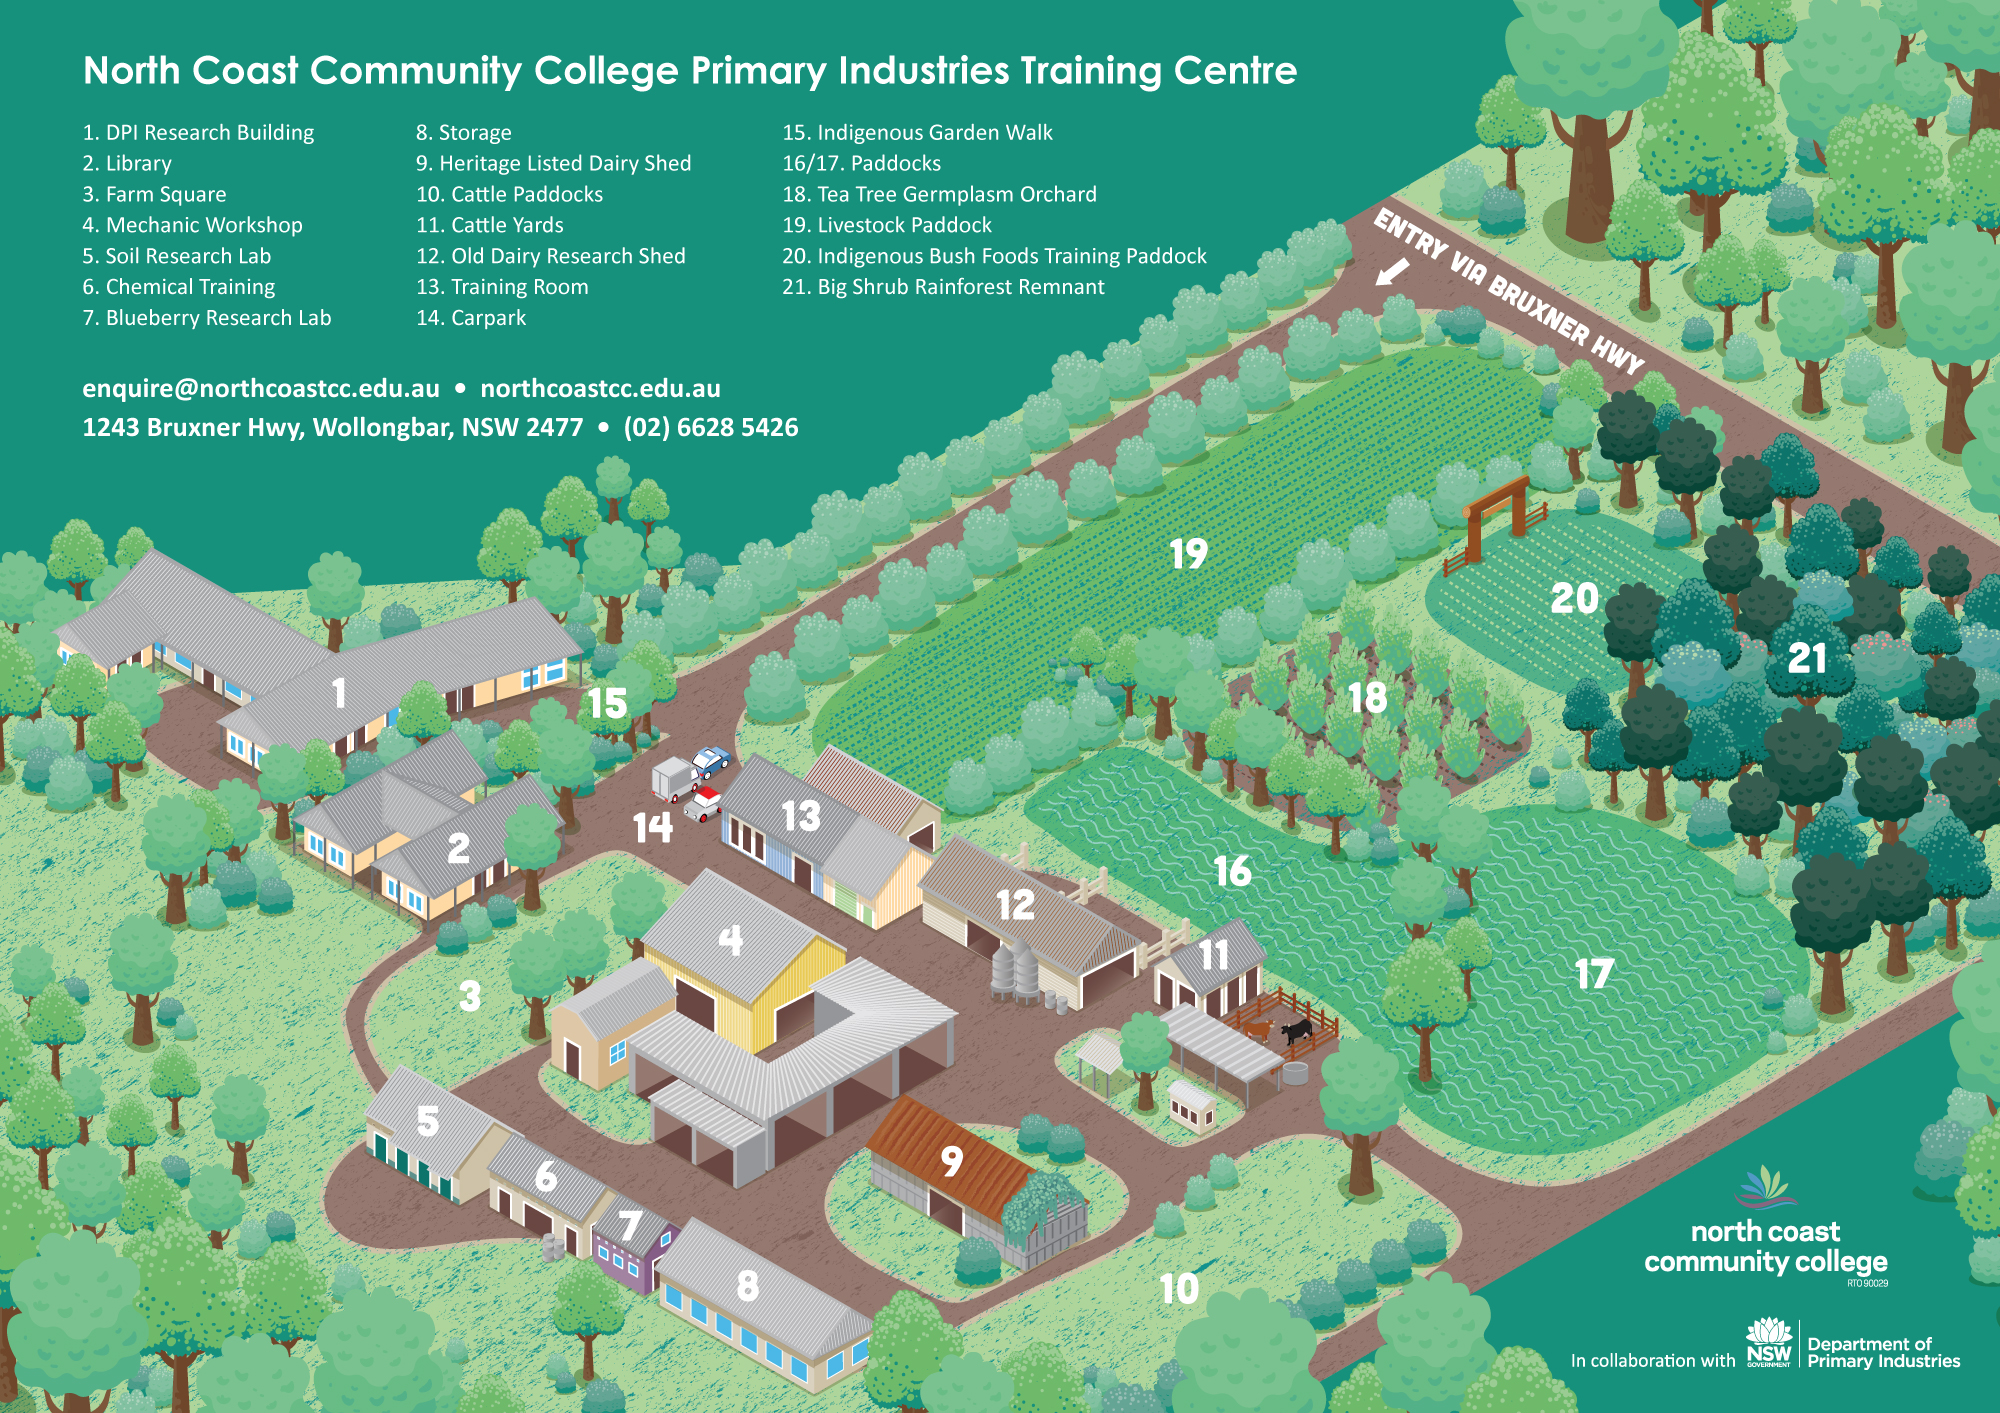 Illustrated Map for NCCC Primary Industries Training Centre